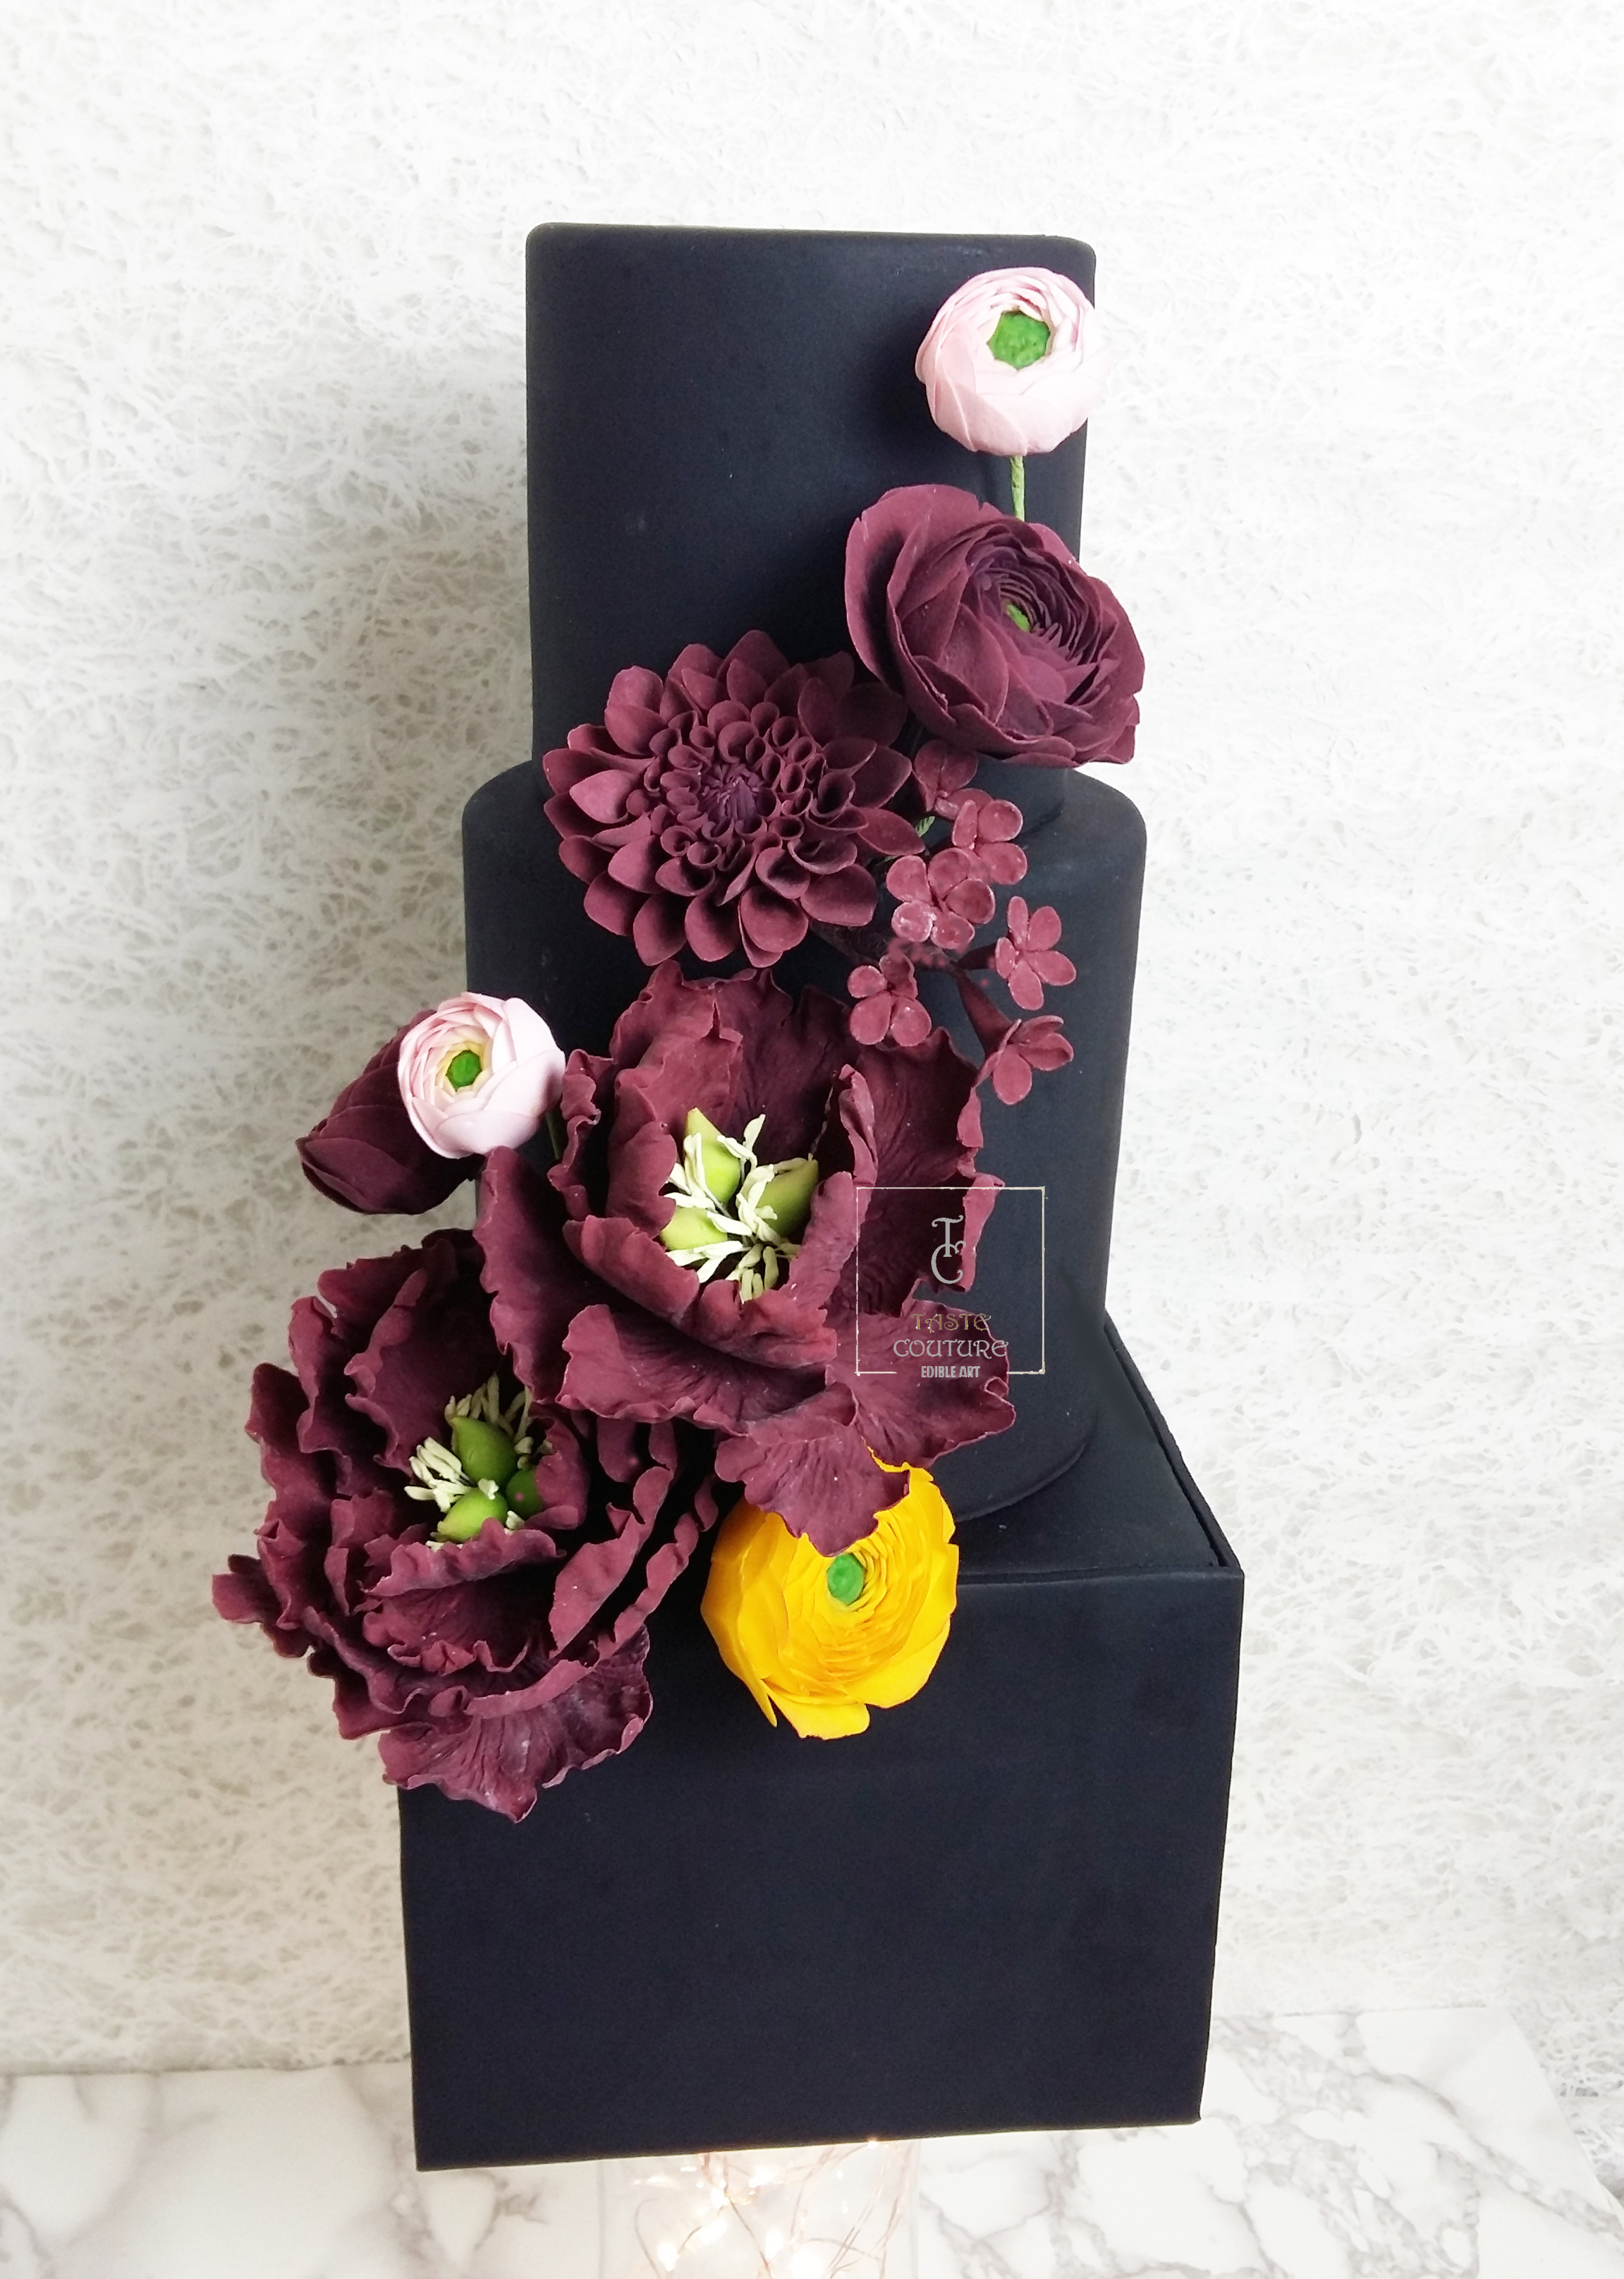 Black fondant wedding cake with burgundy flowers